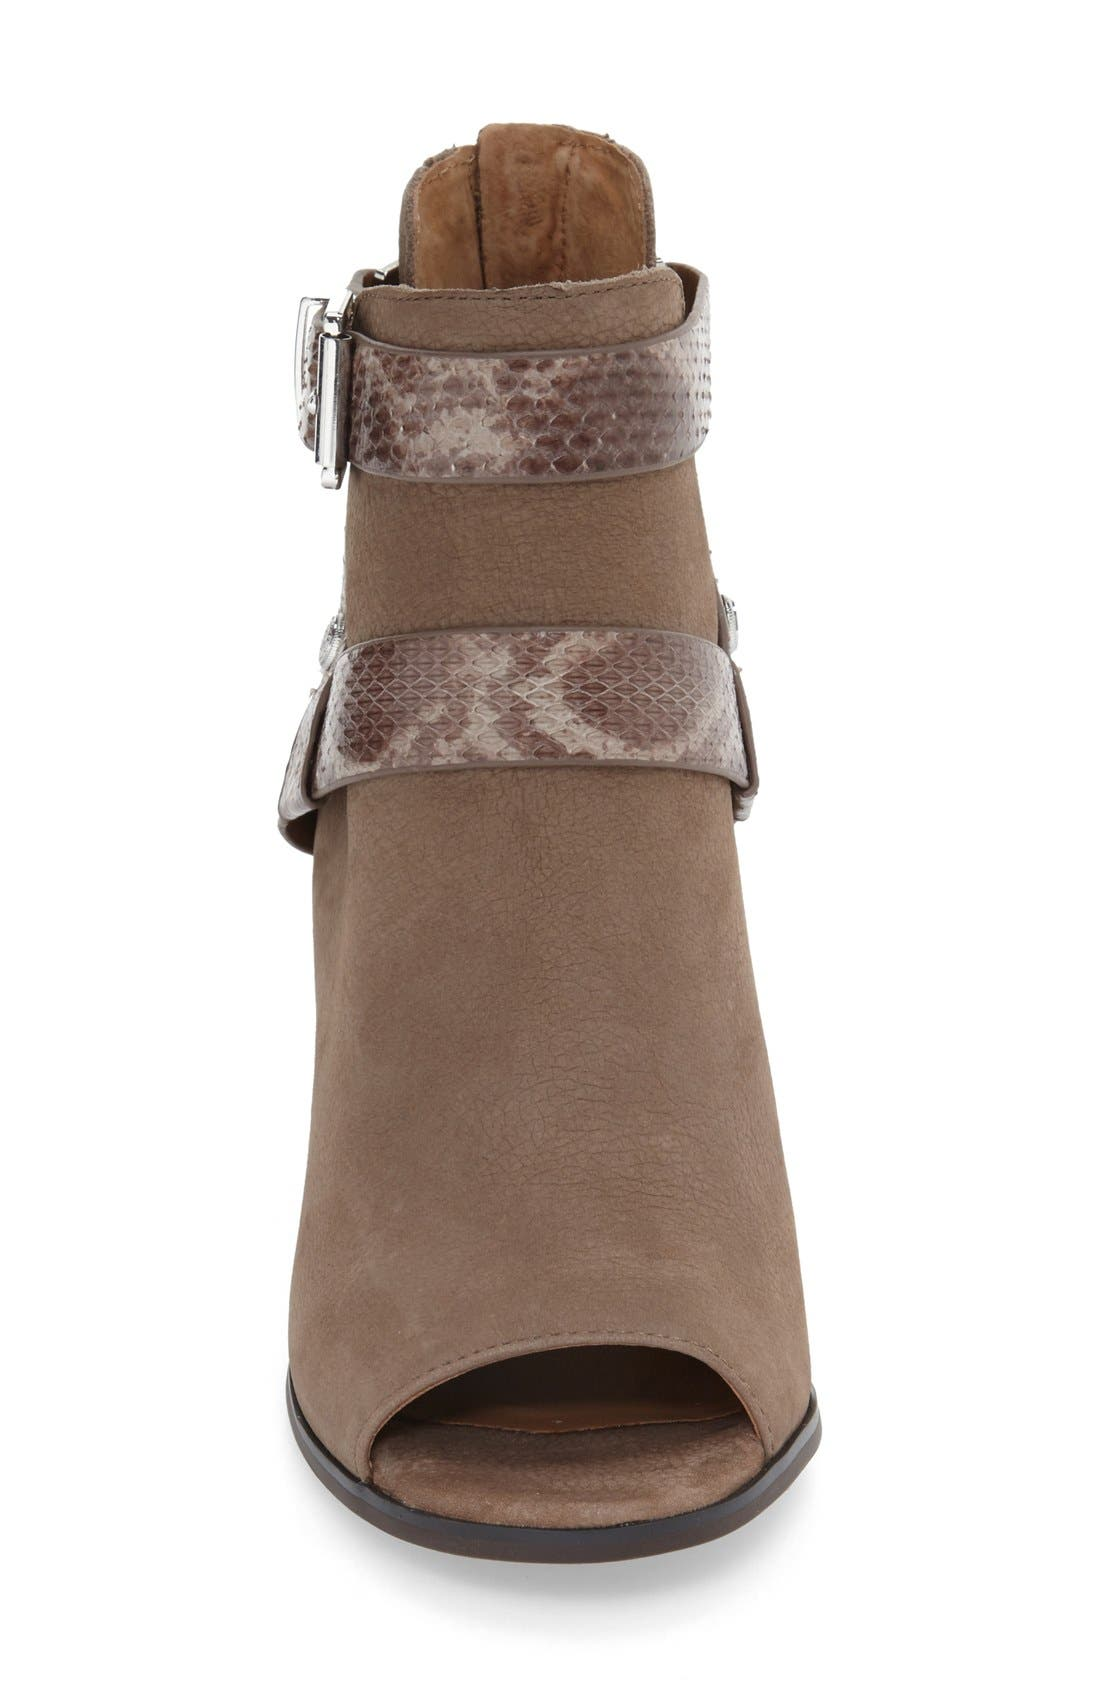 'Caraleigh' Peep Toe Bootie,                             Alternate thumbnail 3, color,                             741